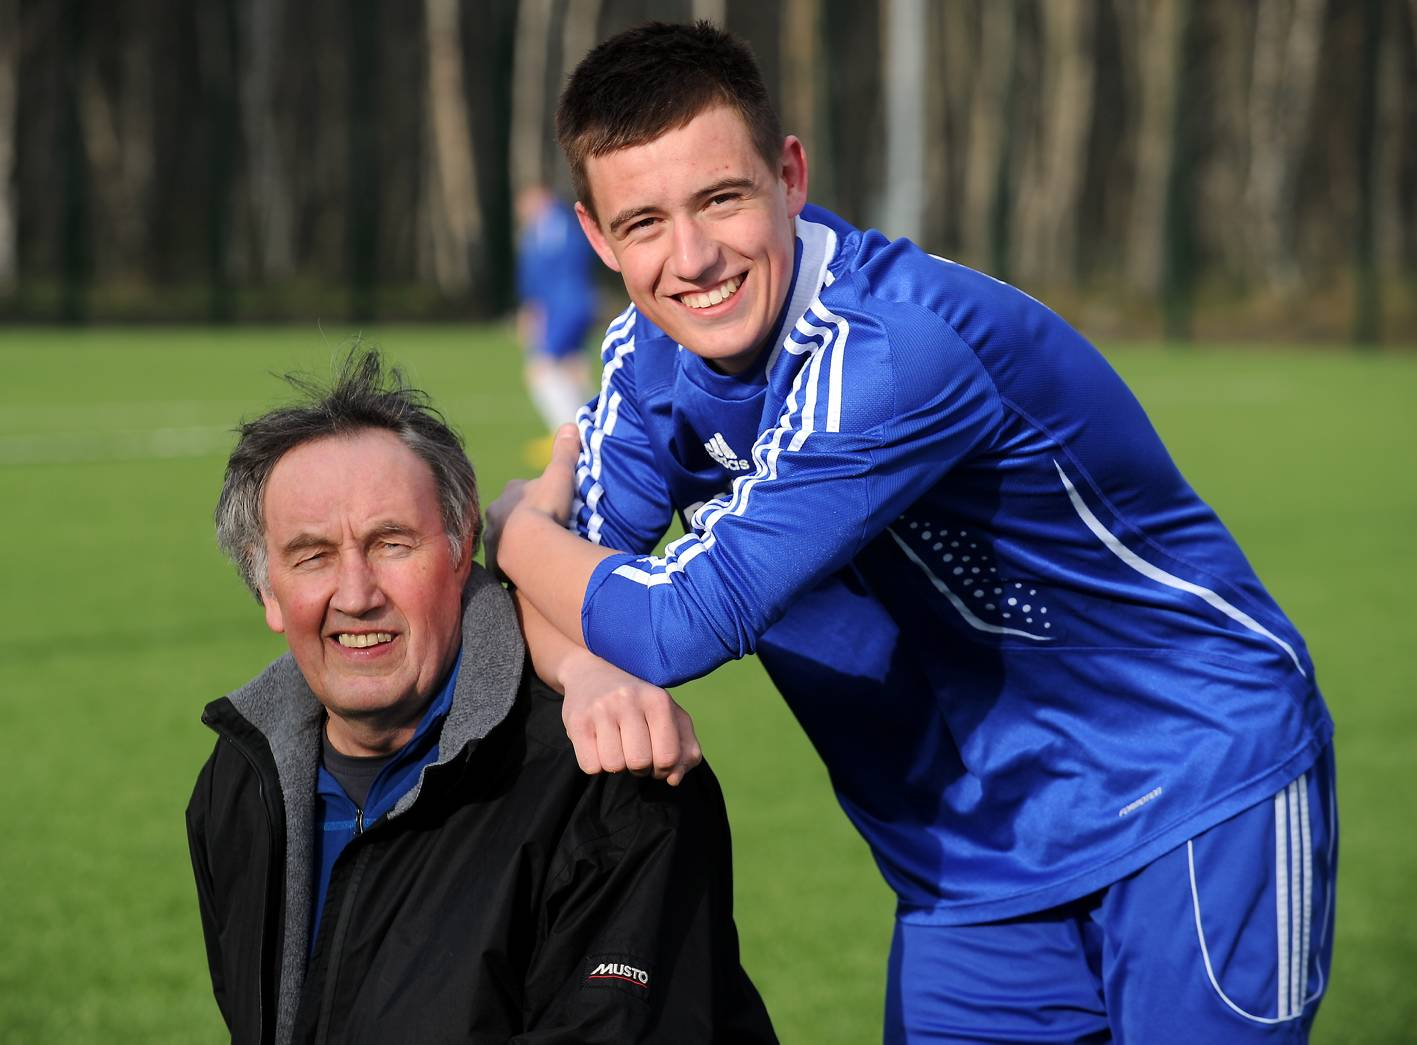 Strathspey Thistle chairman Donly McLeod with grandson James McShane, who plays for the Jags.